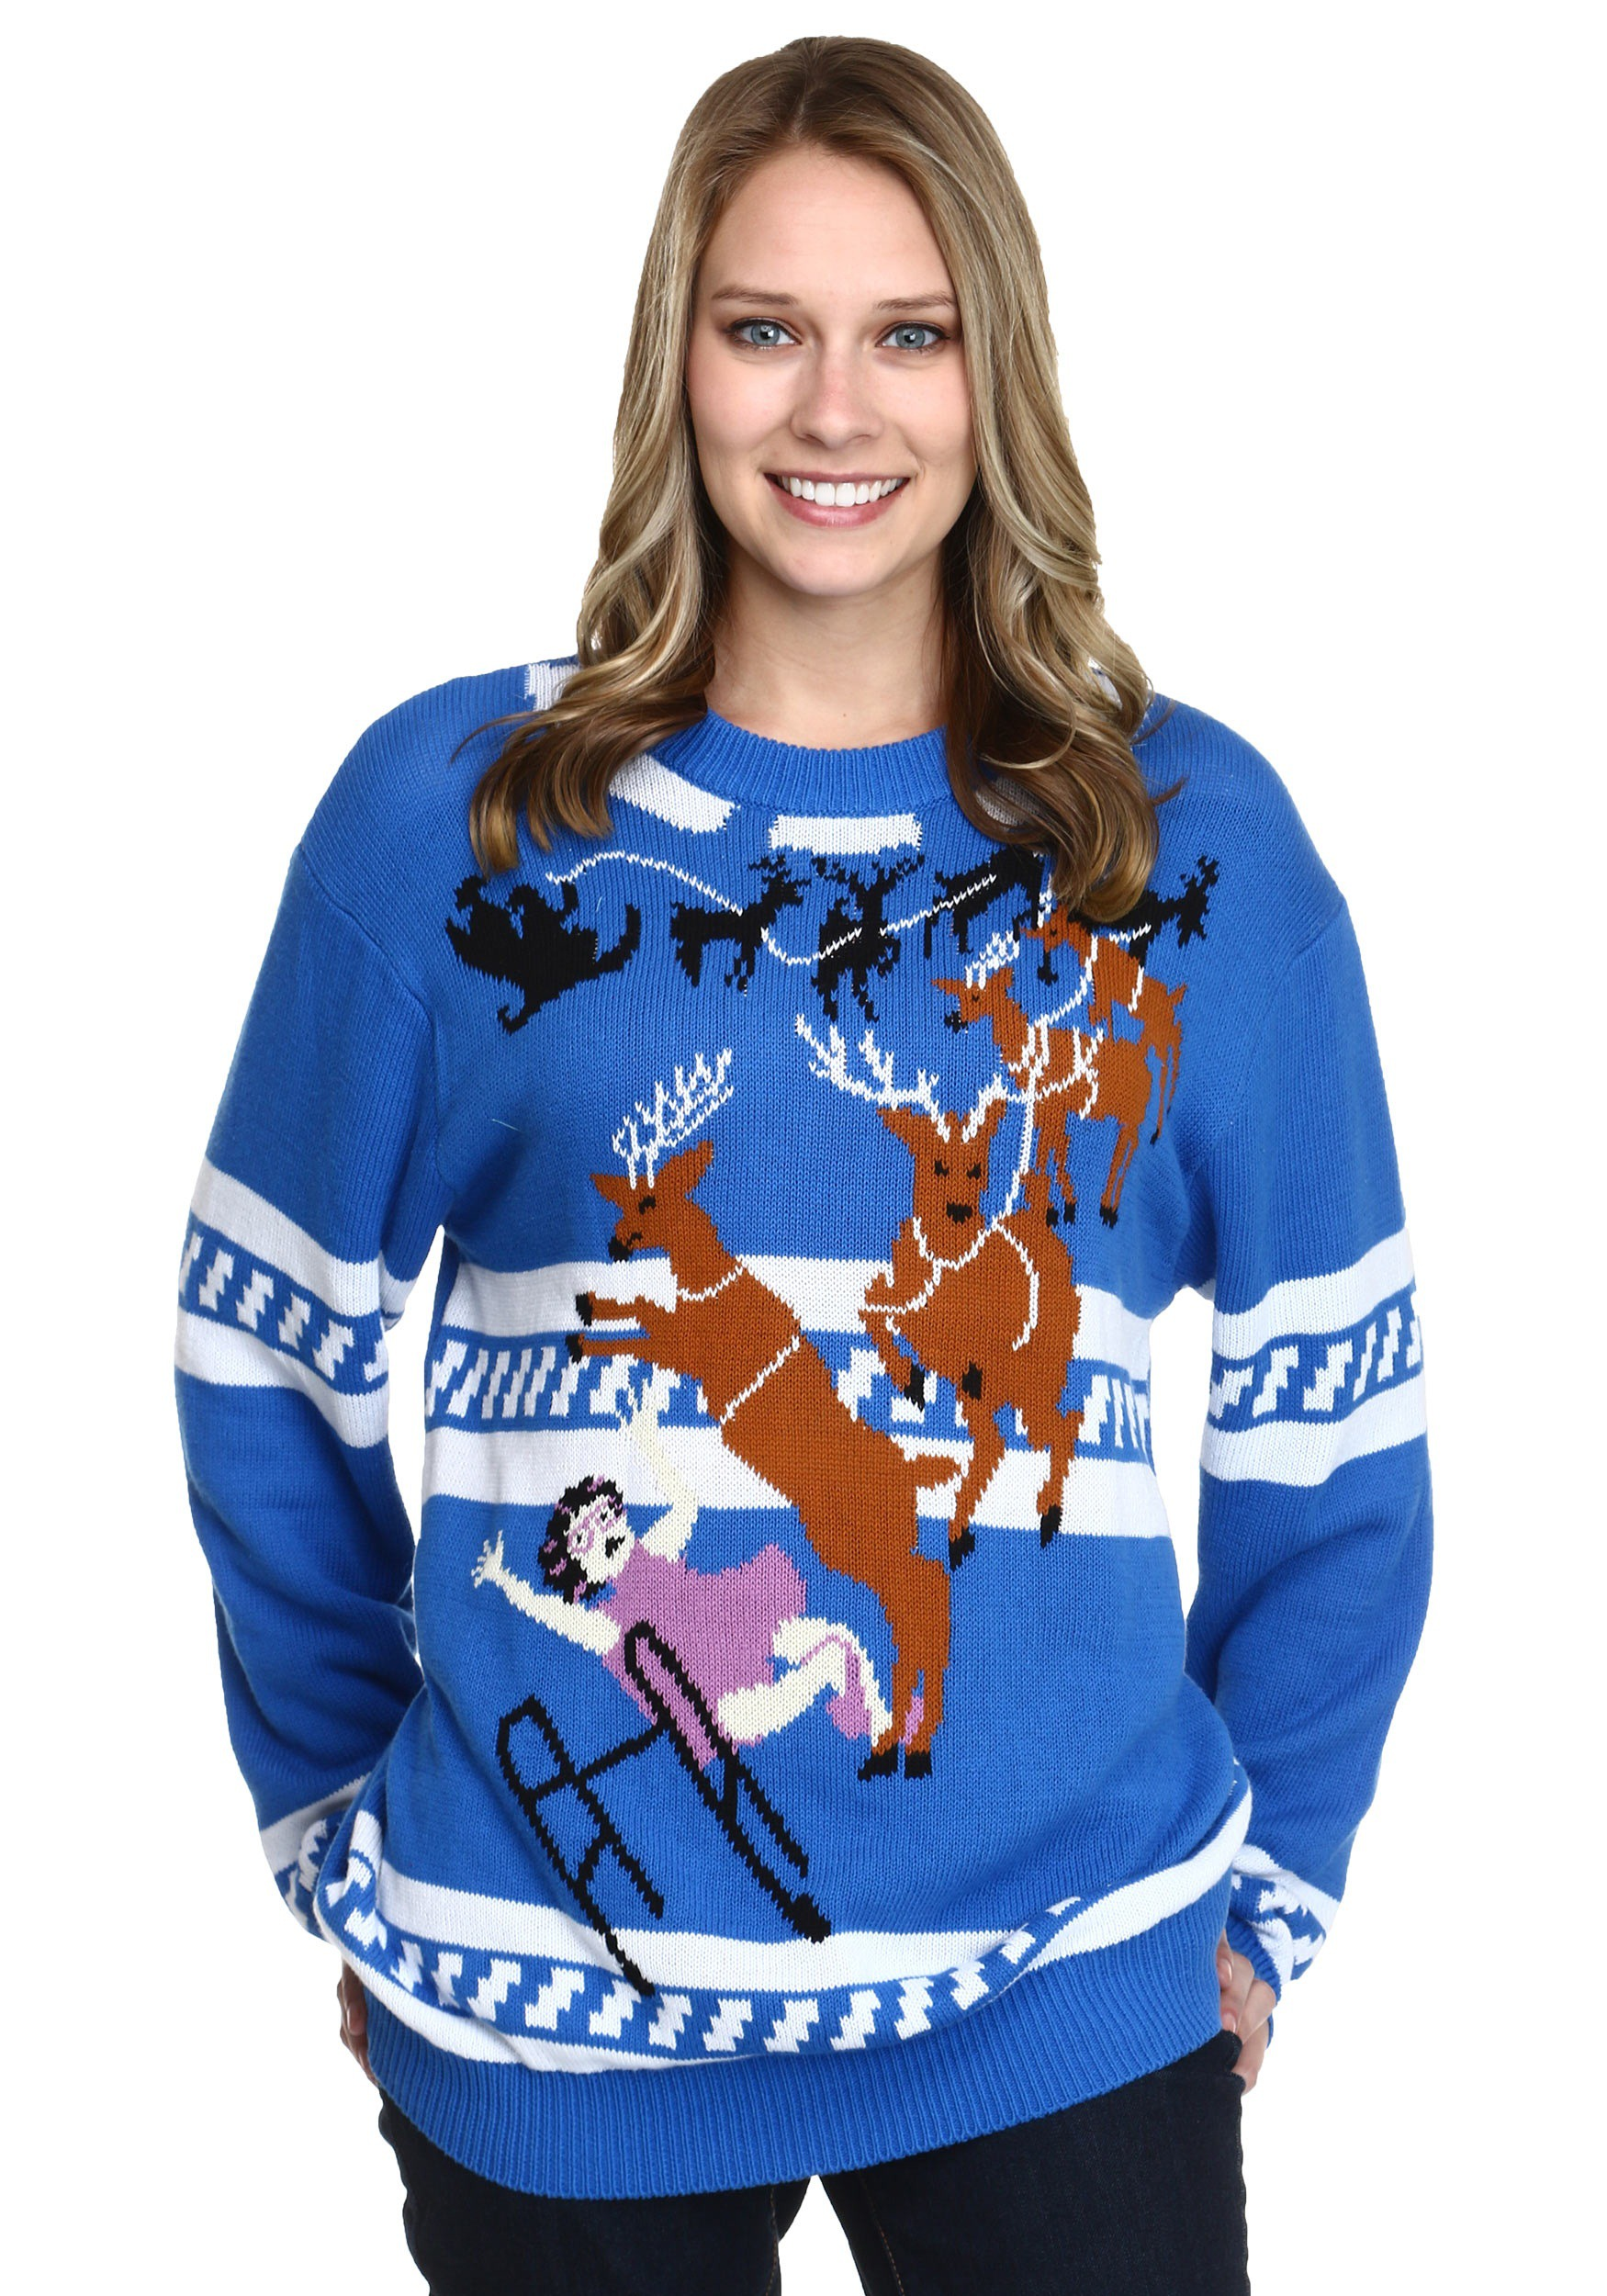 Granny Got Run Over by a Reindeer Ugly Christmas Sweater